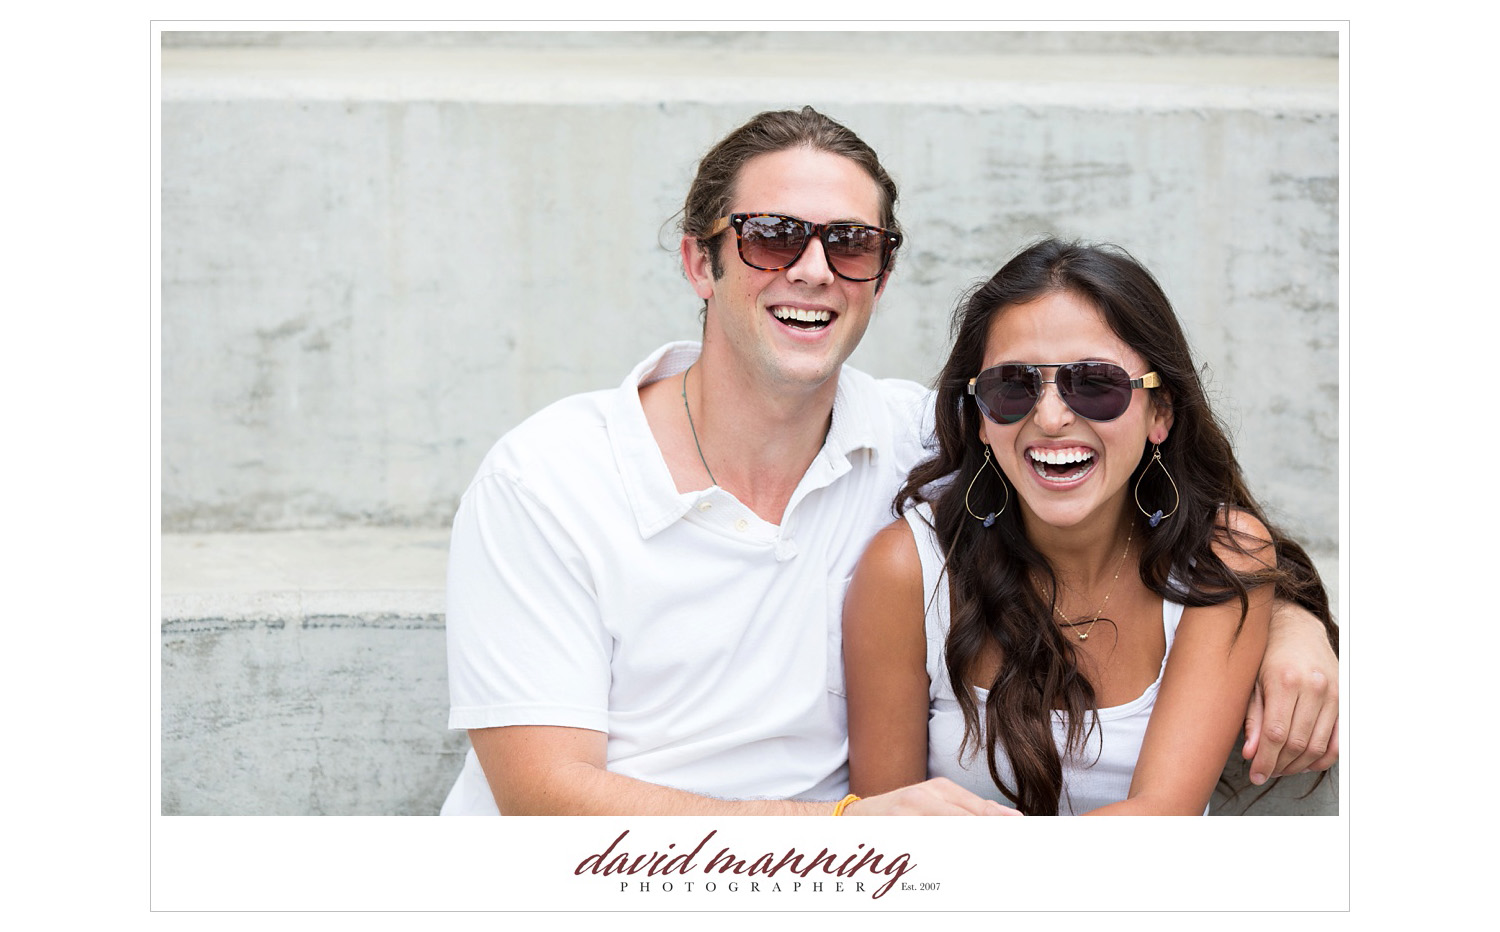 SOLO-Eyewear--Commercial-Editorial-Photos-David-Manning-Photographers-0016.jpg